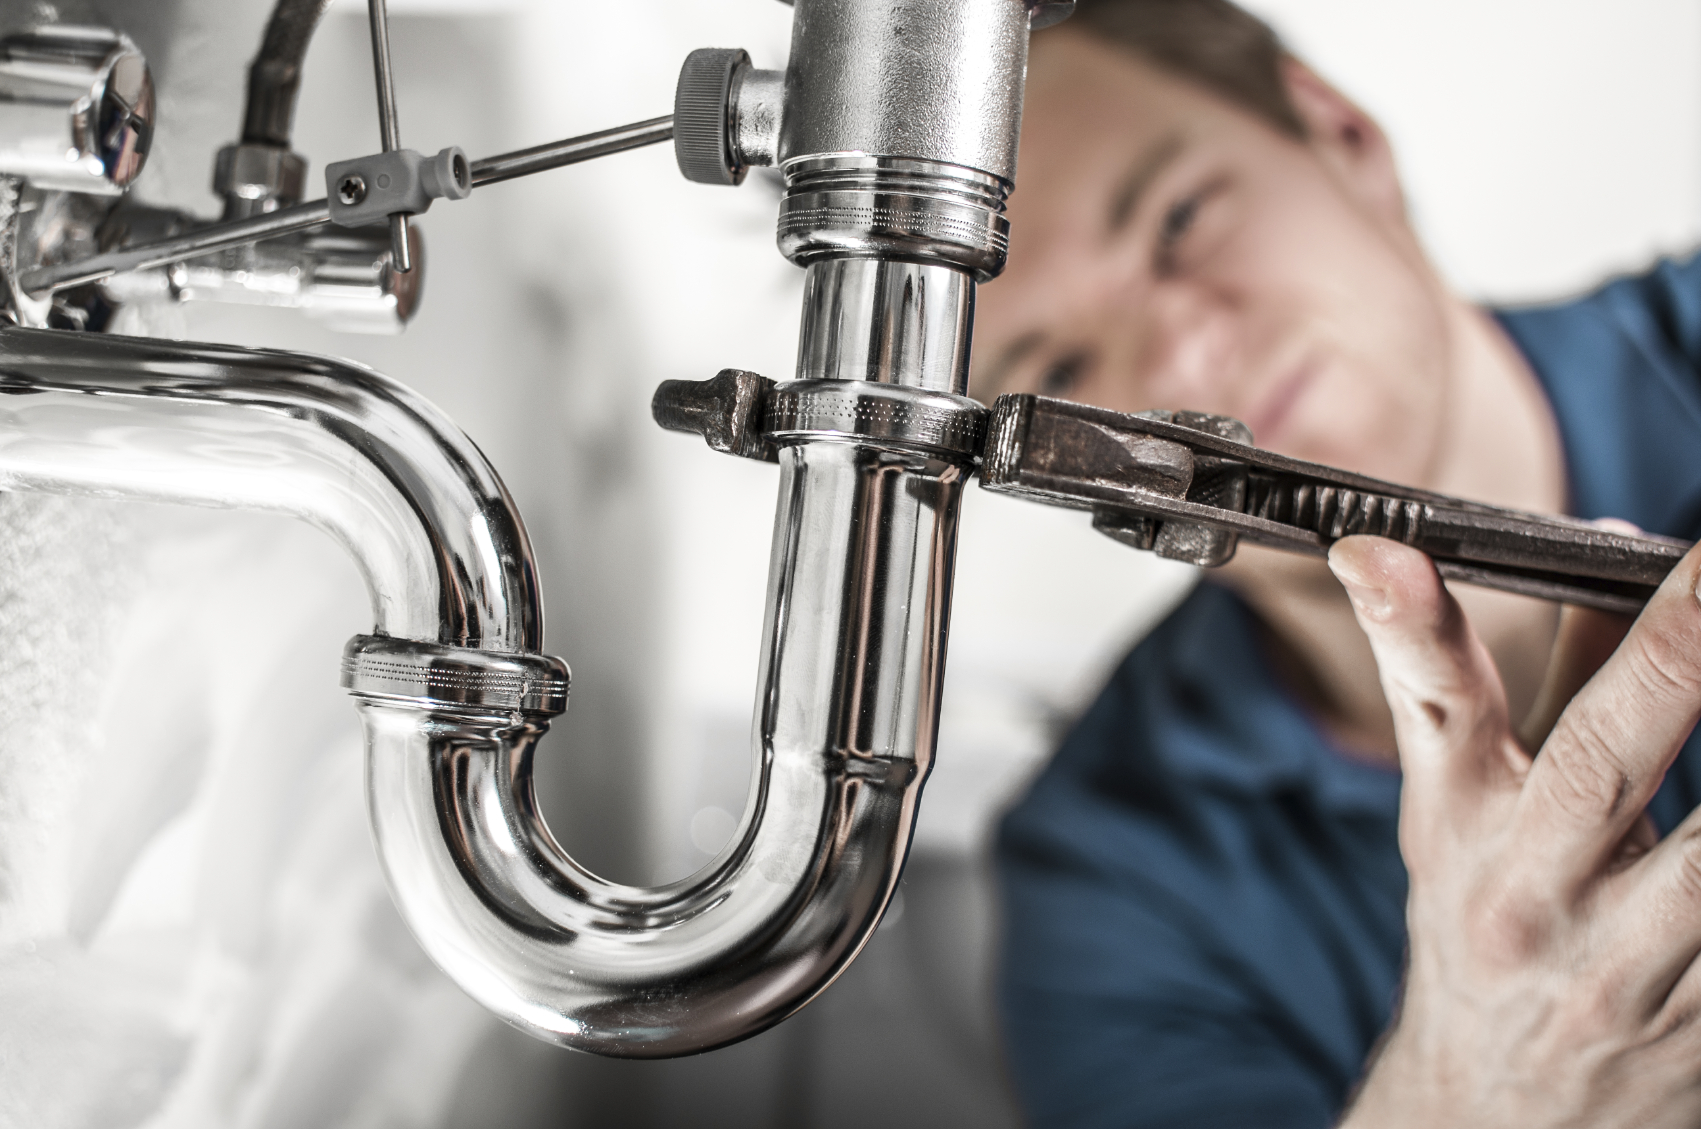 plumbin - For Plumbing Woes - Handyman or Pro?